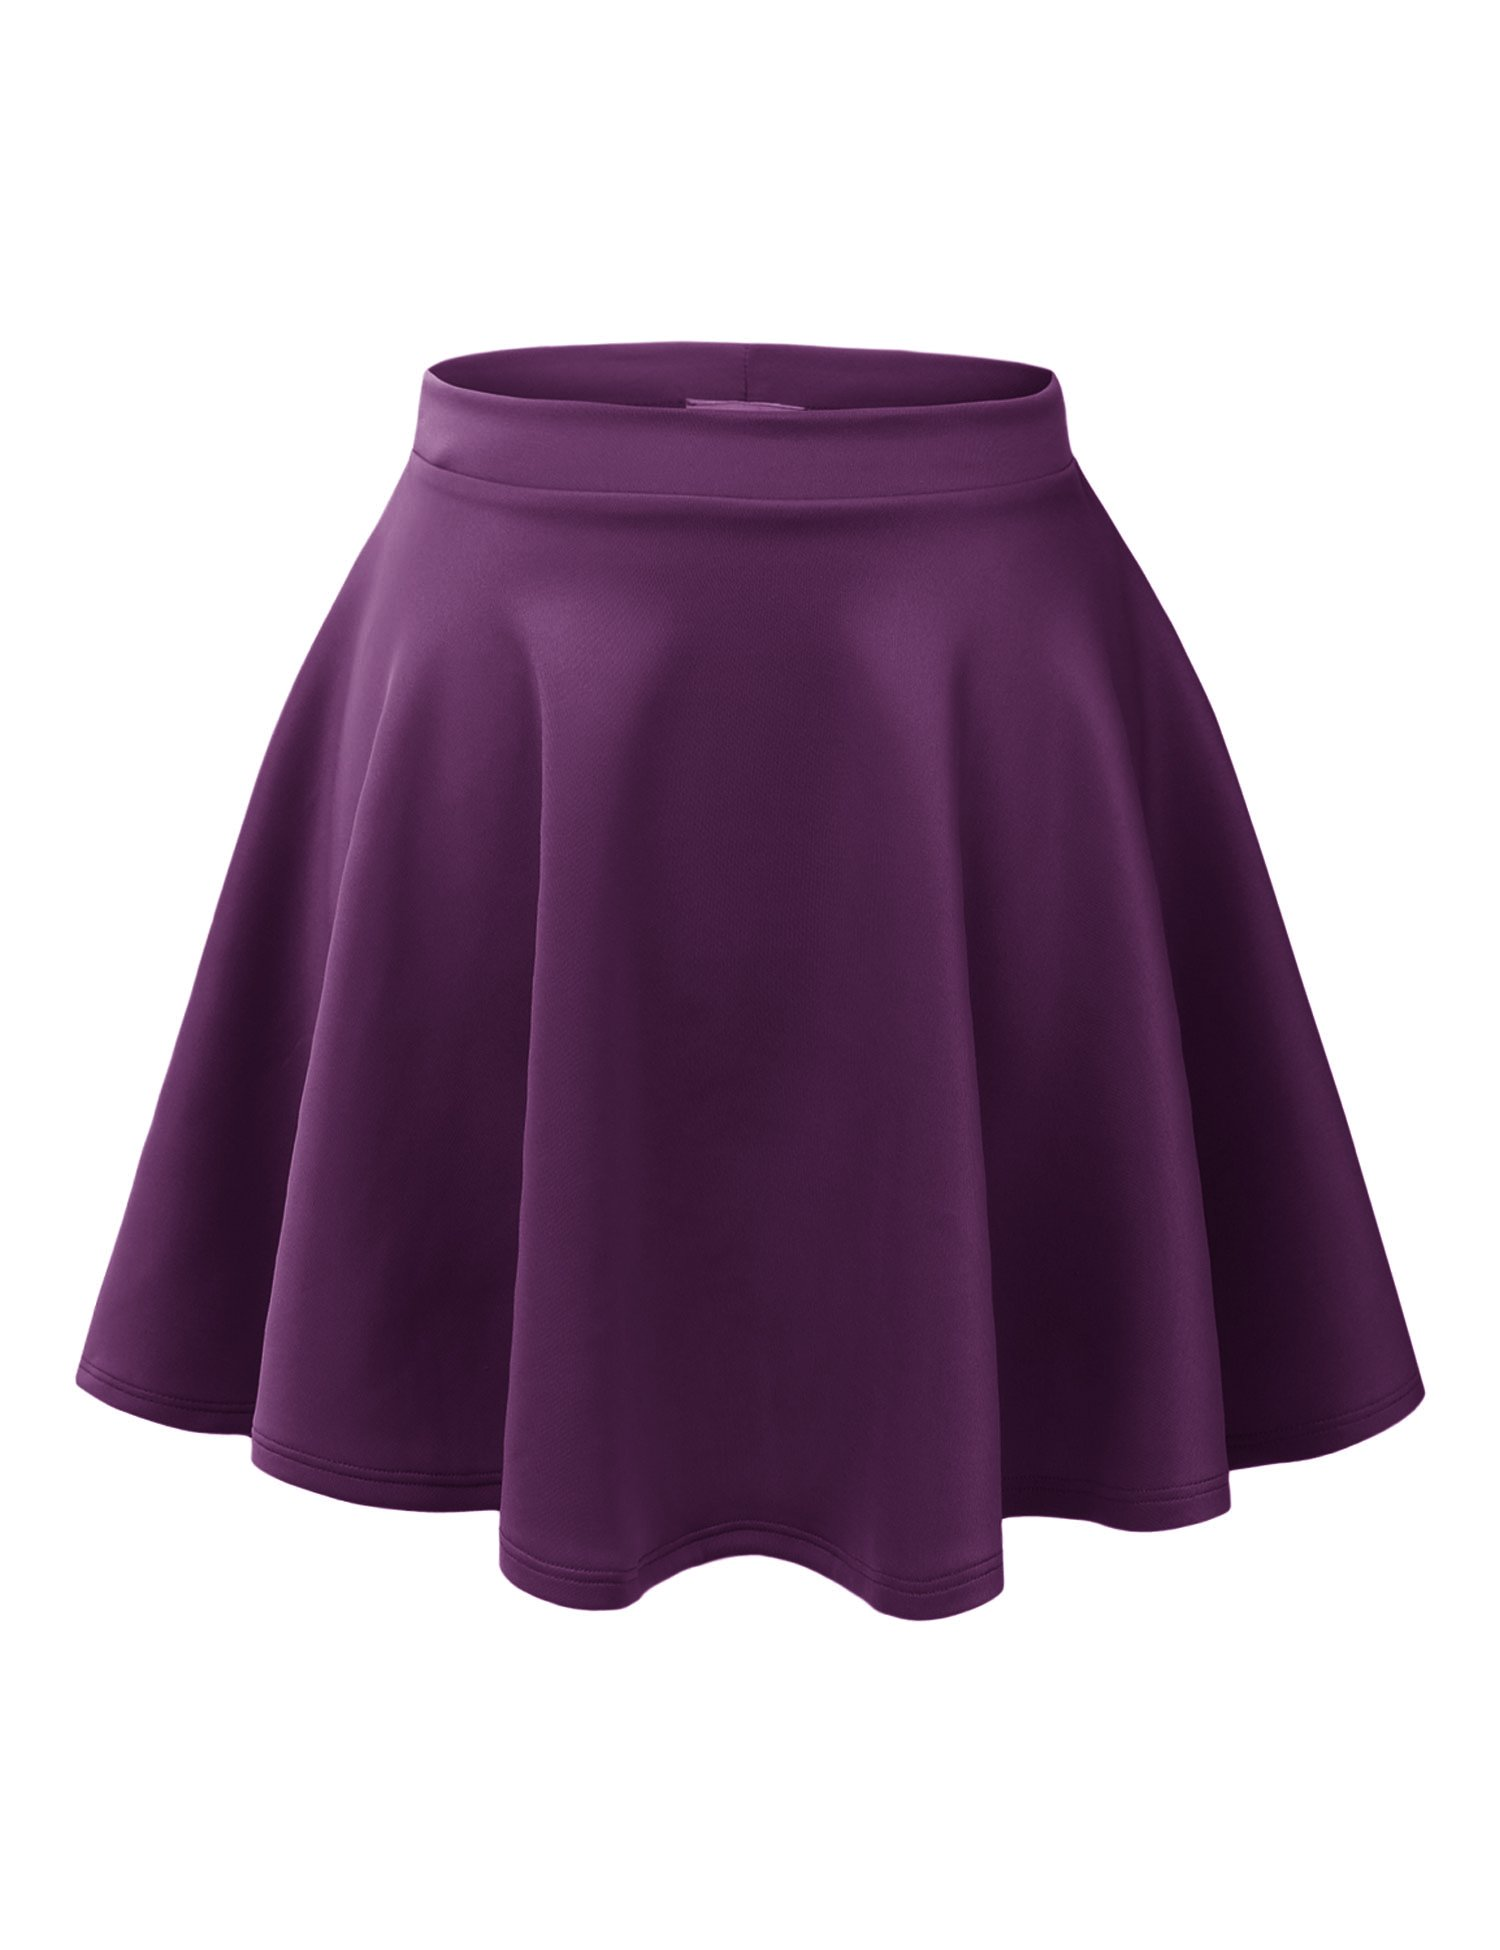 UU Fashion Womens Plus Size Basic Versatile Stretchy Flared Skater Skirt (3X, WB1034_Eggplant)